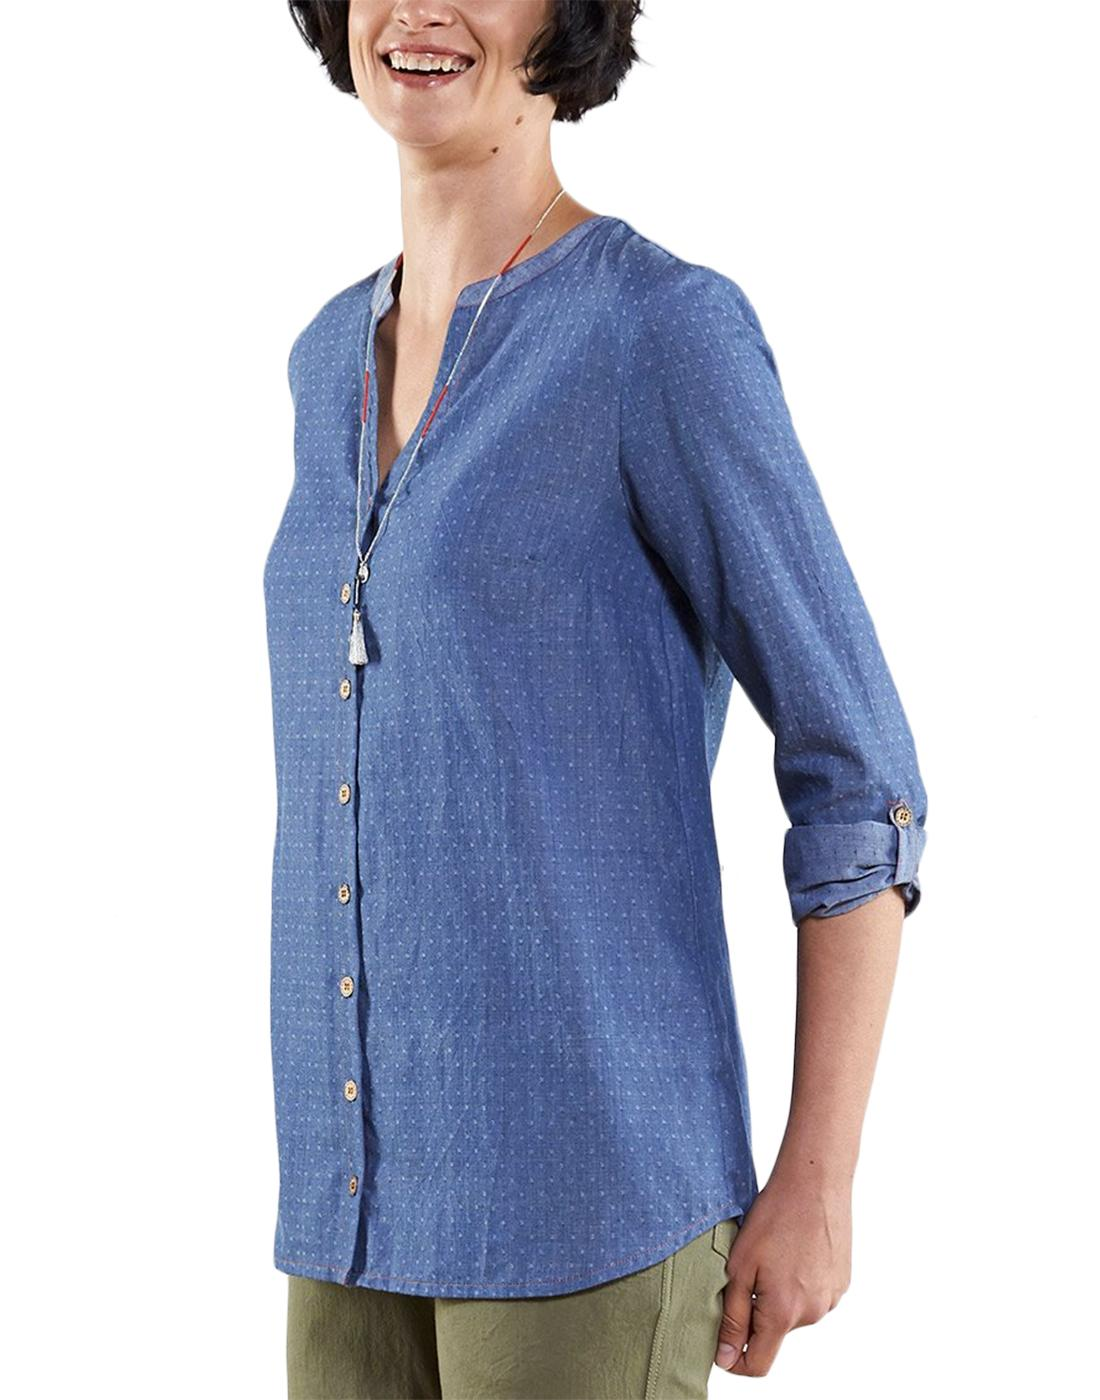 NOMADS Womens Retro Handloom Pin Dot Shirt